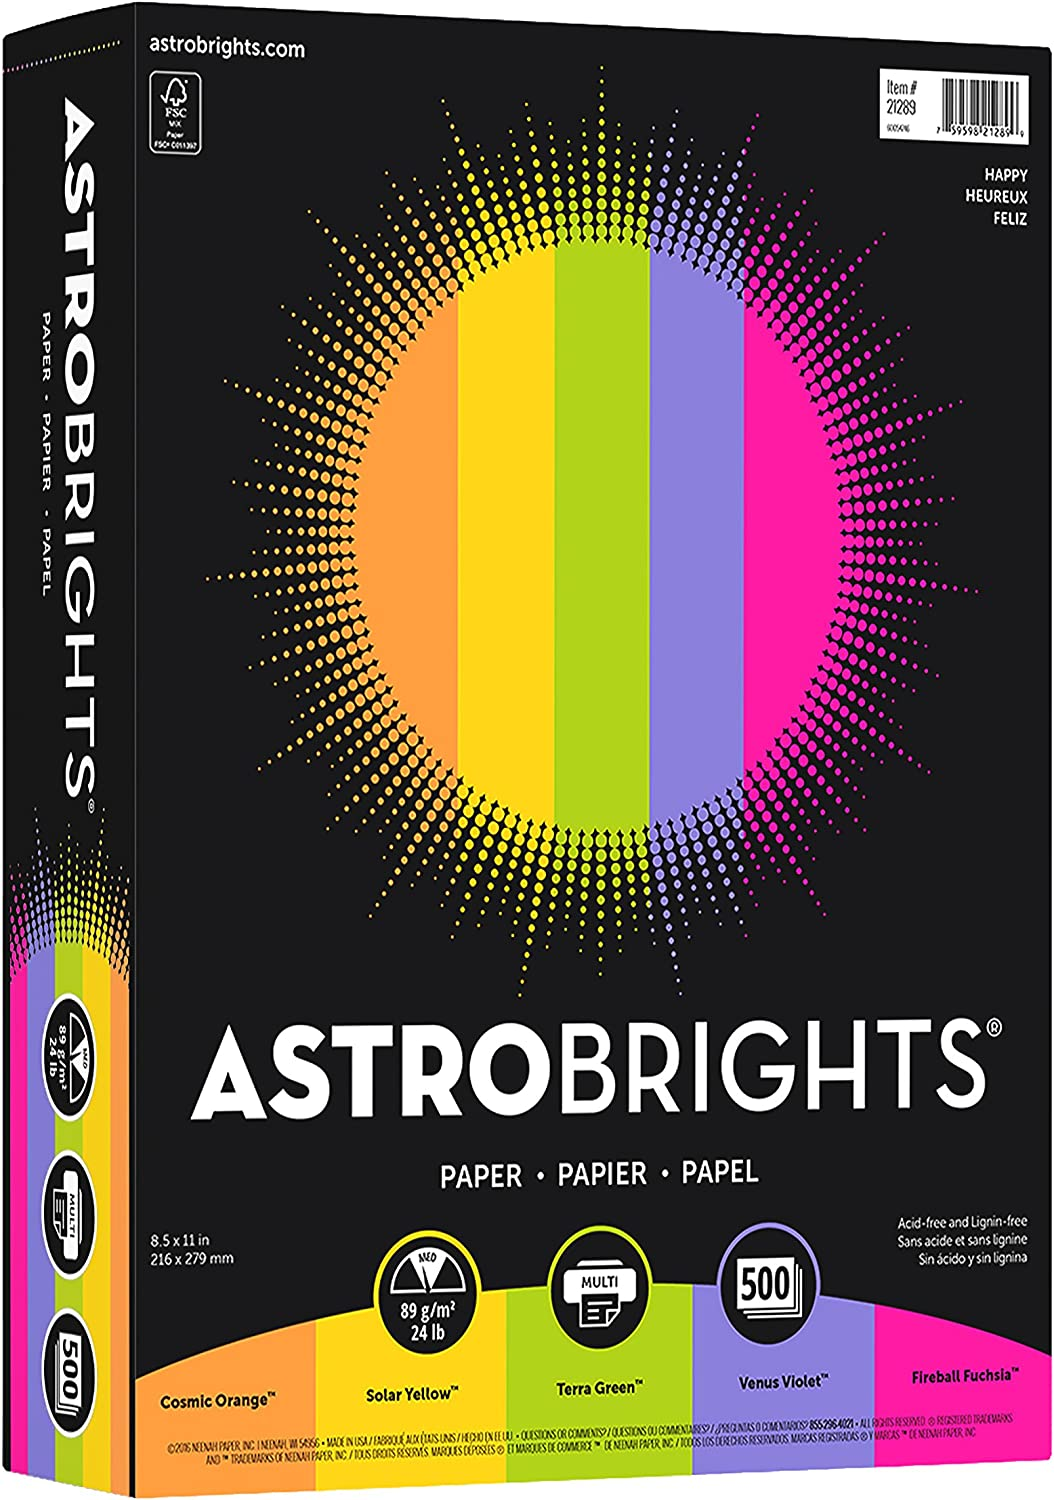 """Neenah Wausau 21289 Astrobrights Color Paper, 8.5"""" x 11"""", 24 lb / 89 gsm, """"Happy"""" 5-Color Assortment, 500 Sheets, Multi Colored : Printer And Copier Paper : Office Products"""